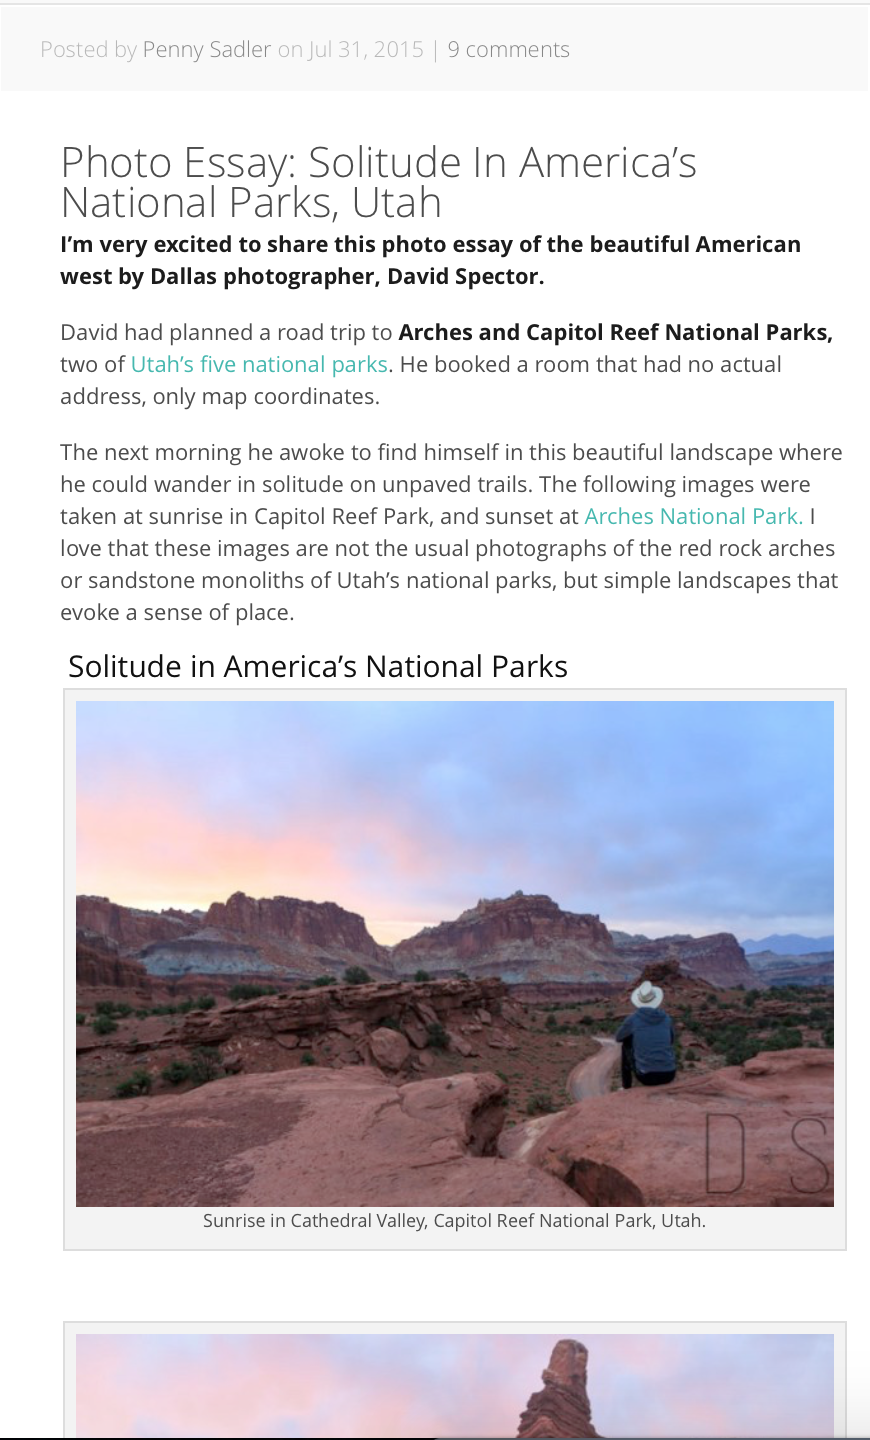 Interviewed and featured on travel blog for work done in Utah National Parks